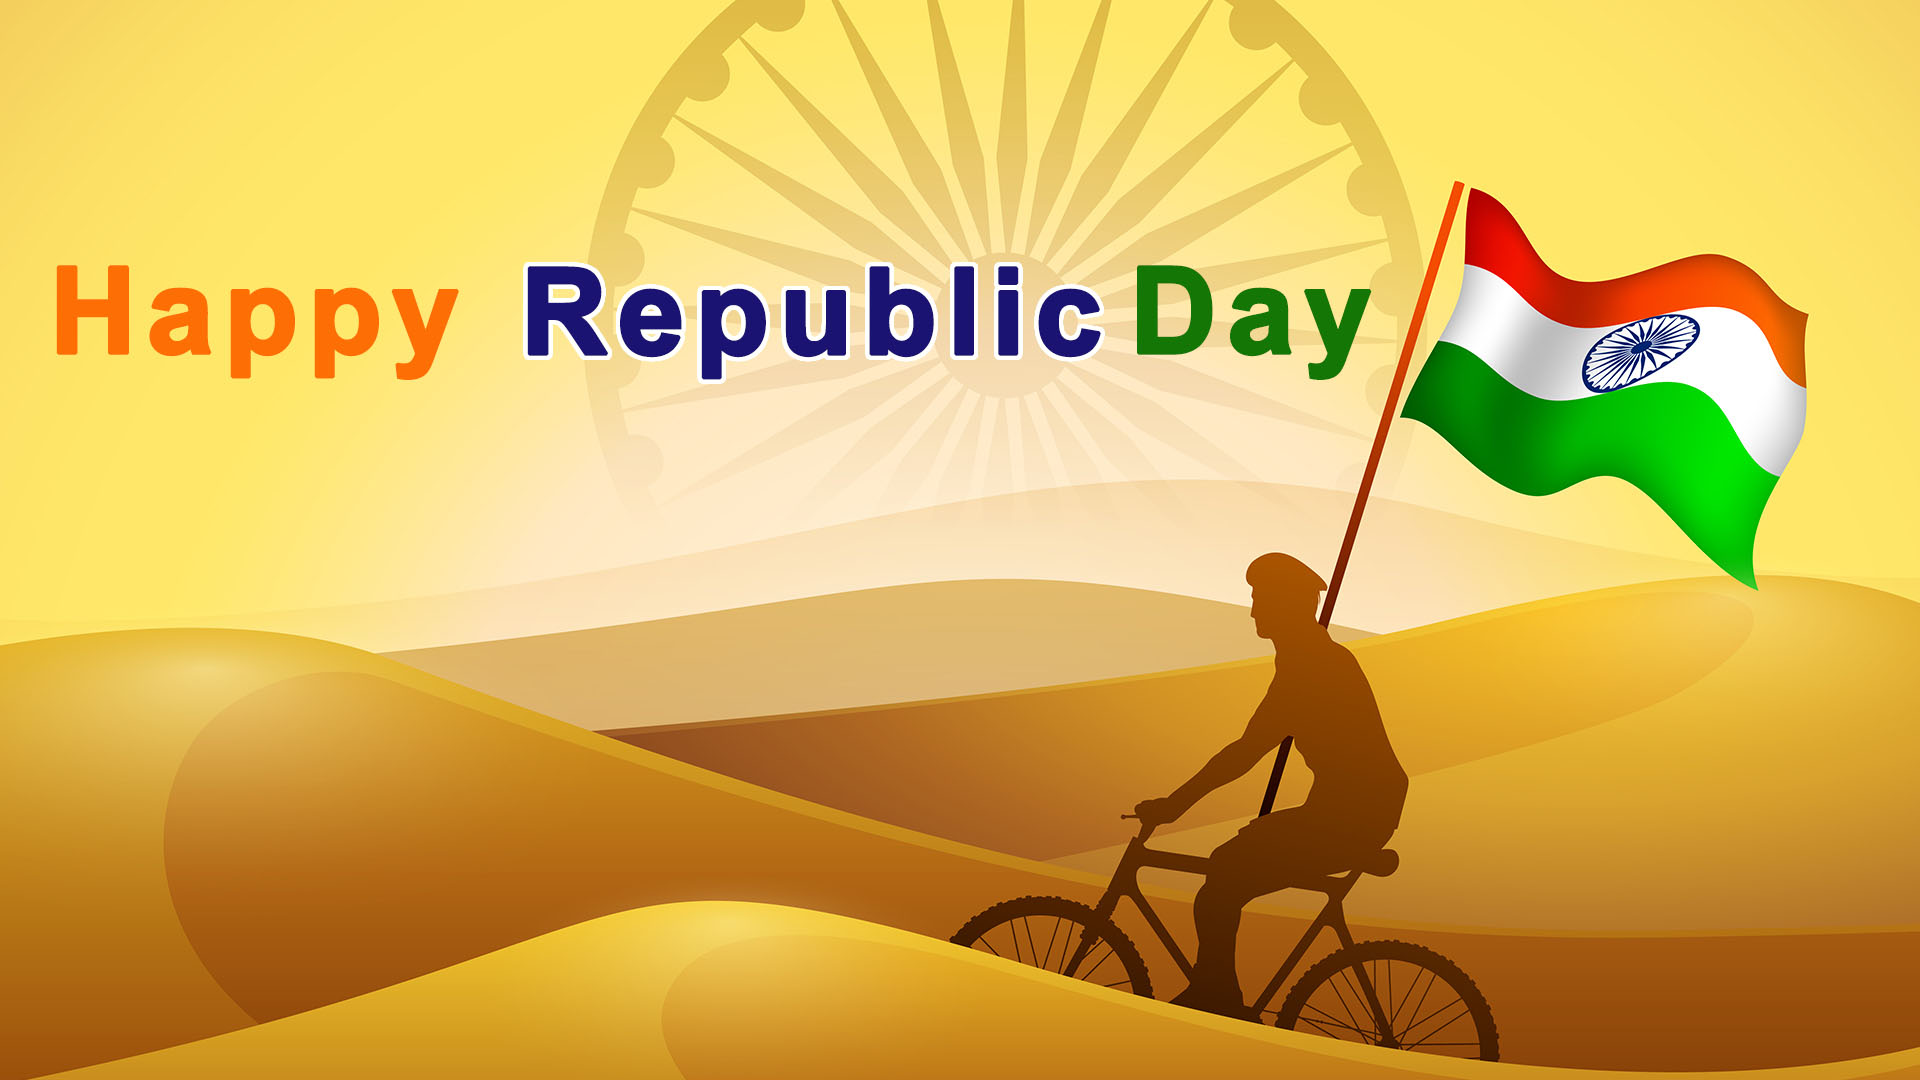 Happy Republic Day Quotes For Iphone Android Phone Pc Hd Wallpaper